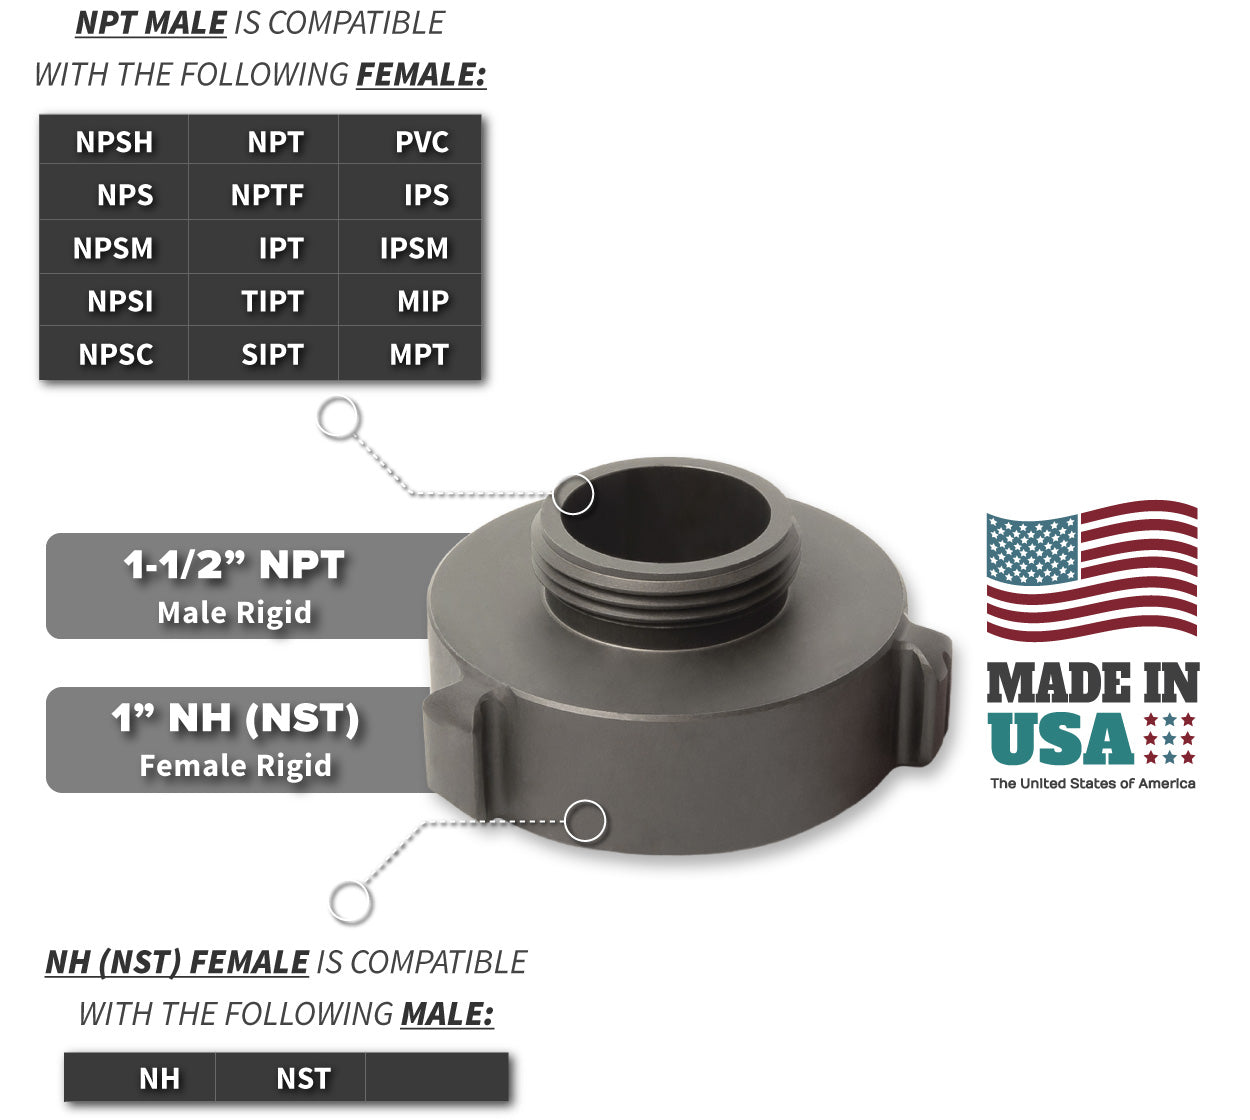 1 Inch NH-NST Female x 1.5 Inch NPT Male Compatibility Thread Chart